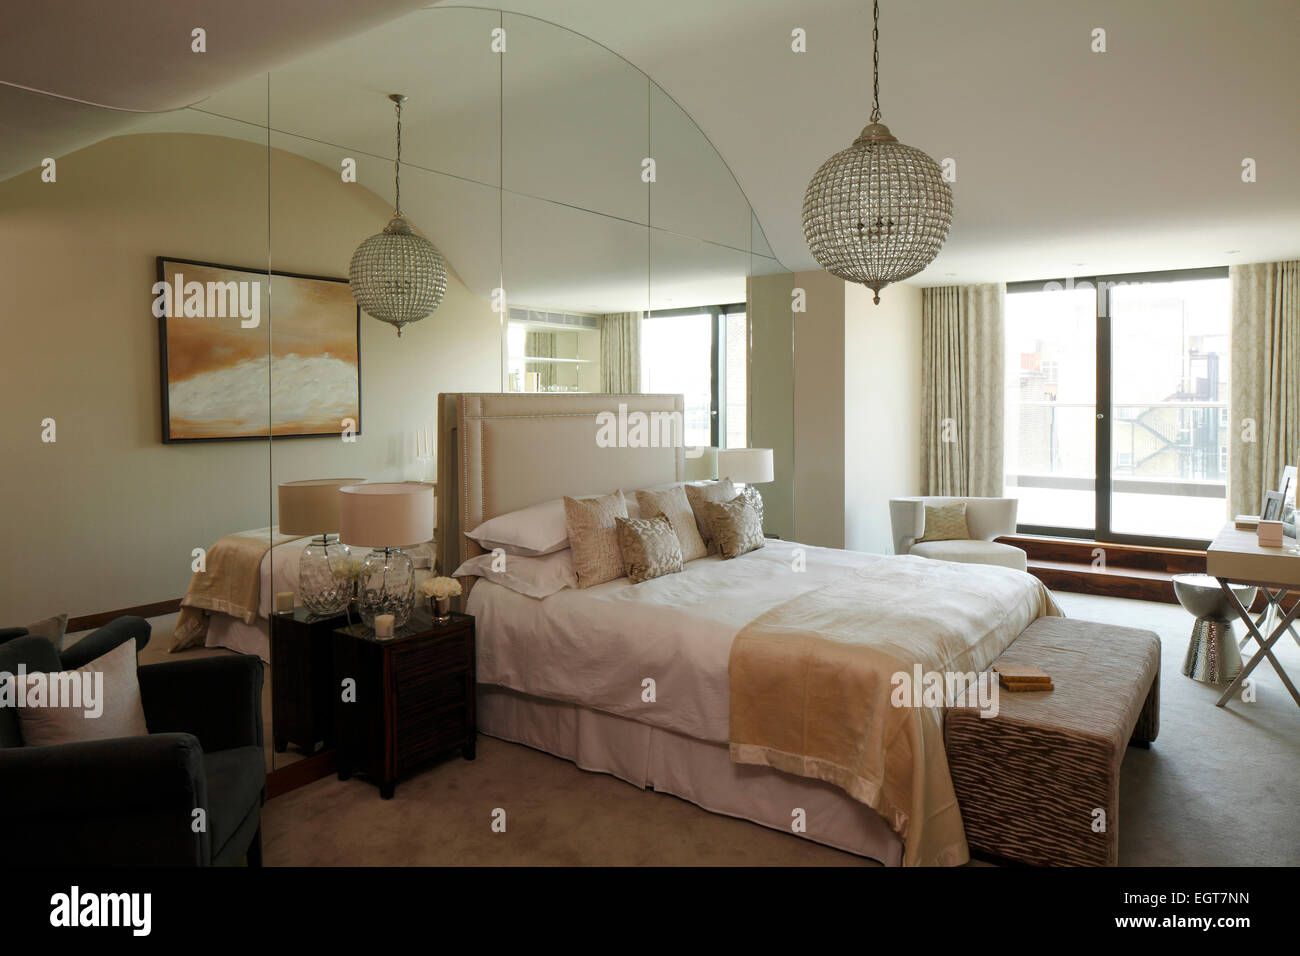 bedroom light show mirrored ceiling stock photos amp mirrored ceiling stock 10526